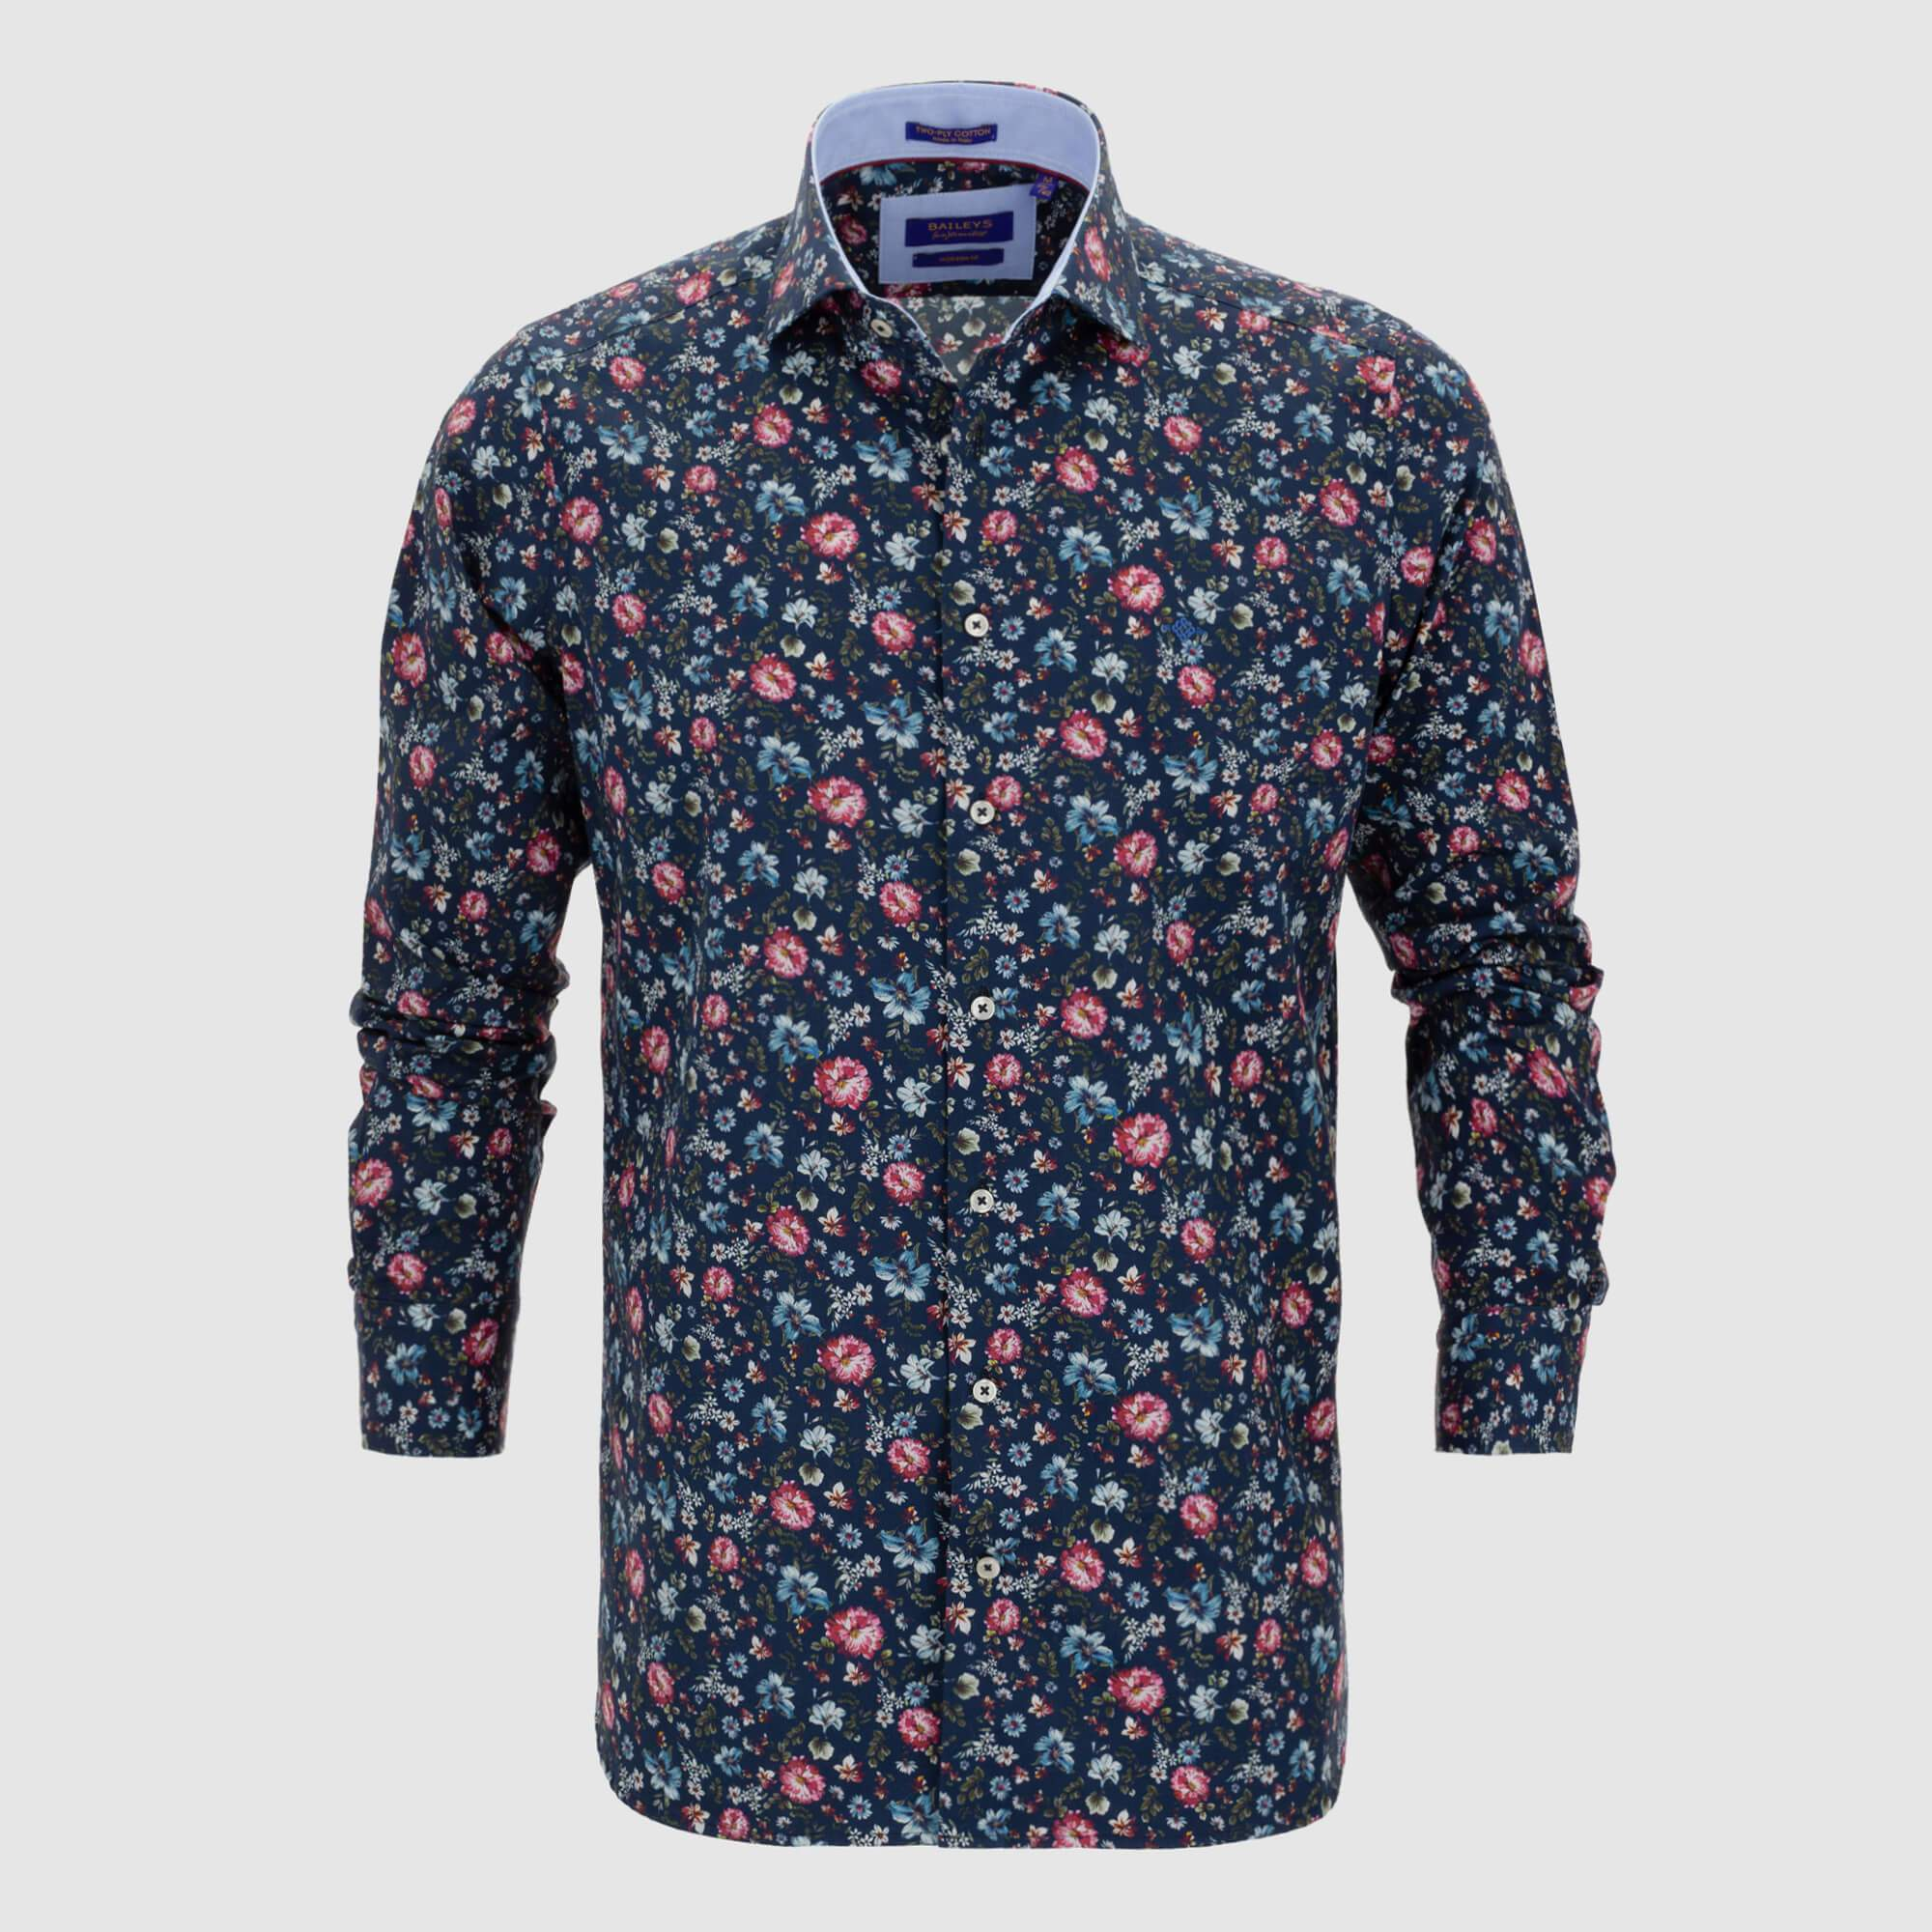 Camisa estampada diseño exclusivo slim fit 927840